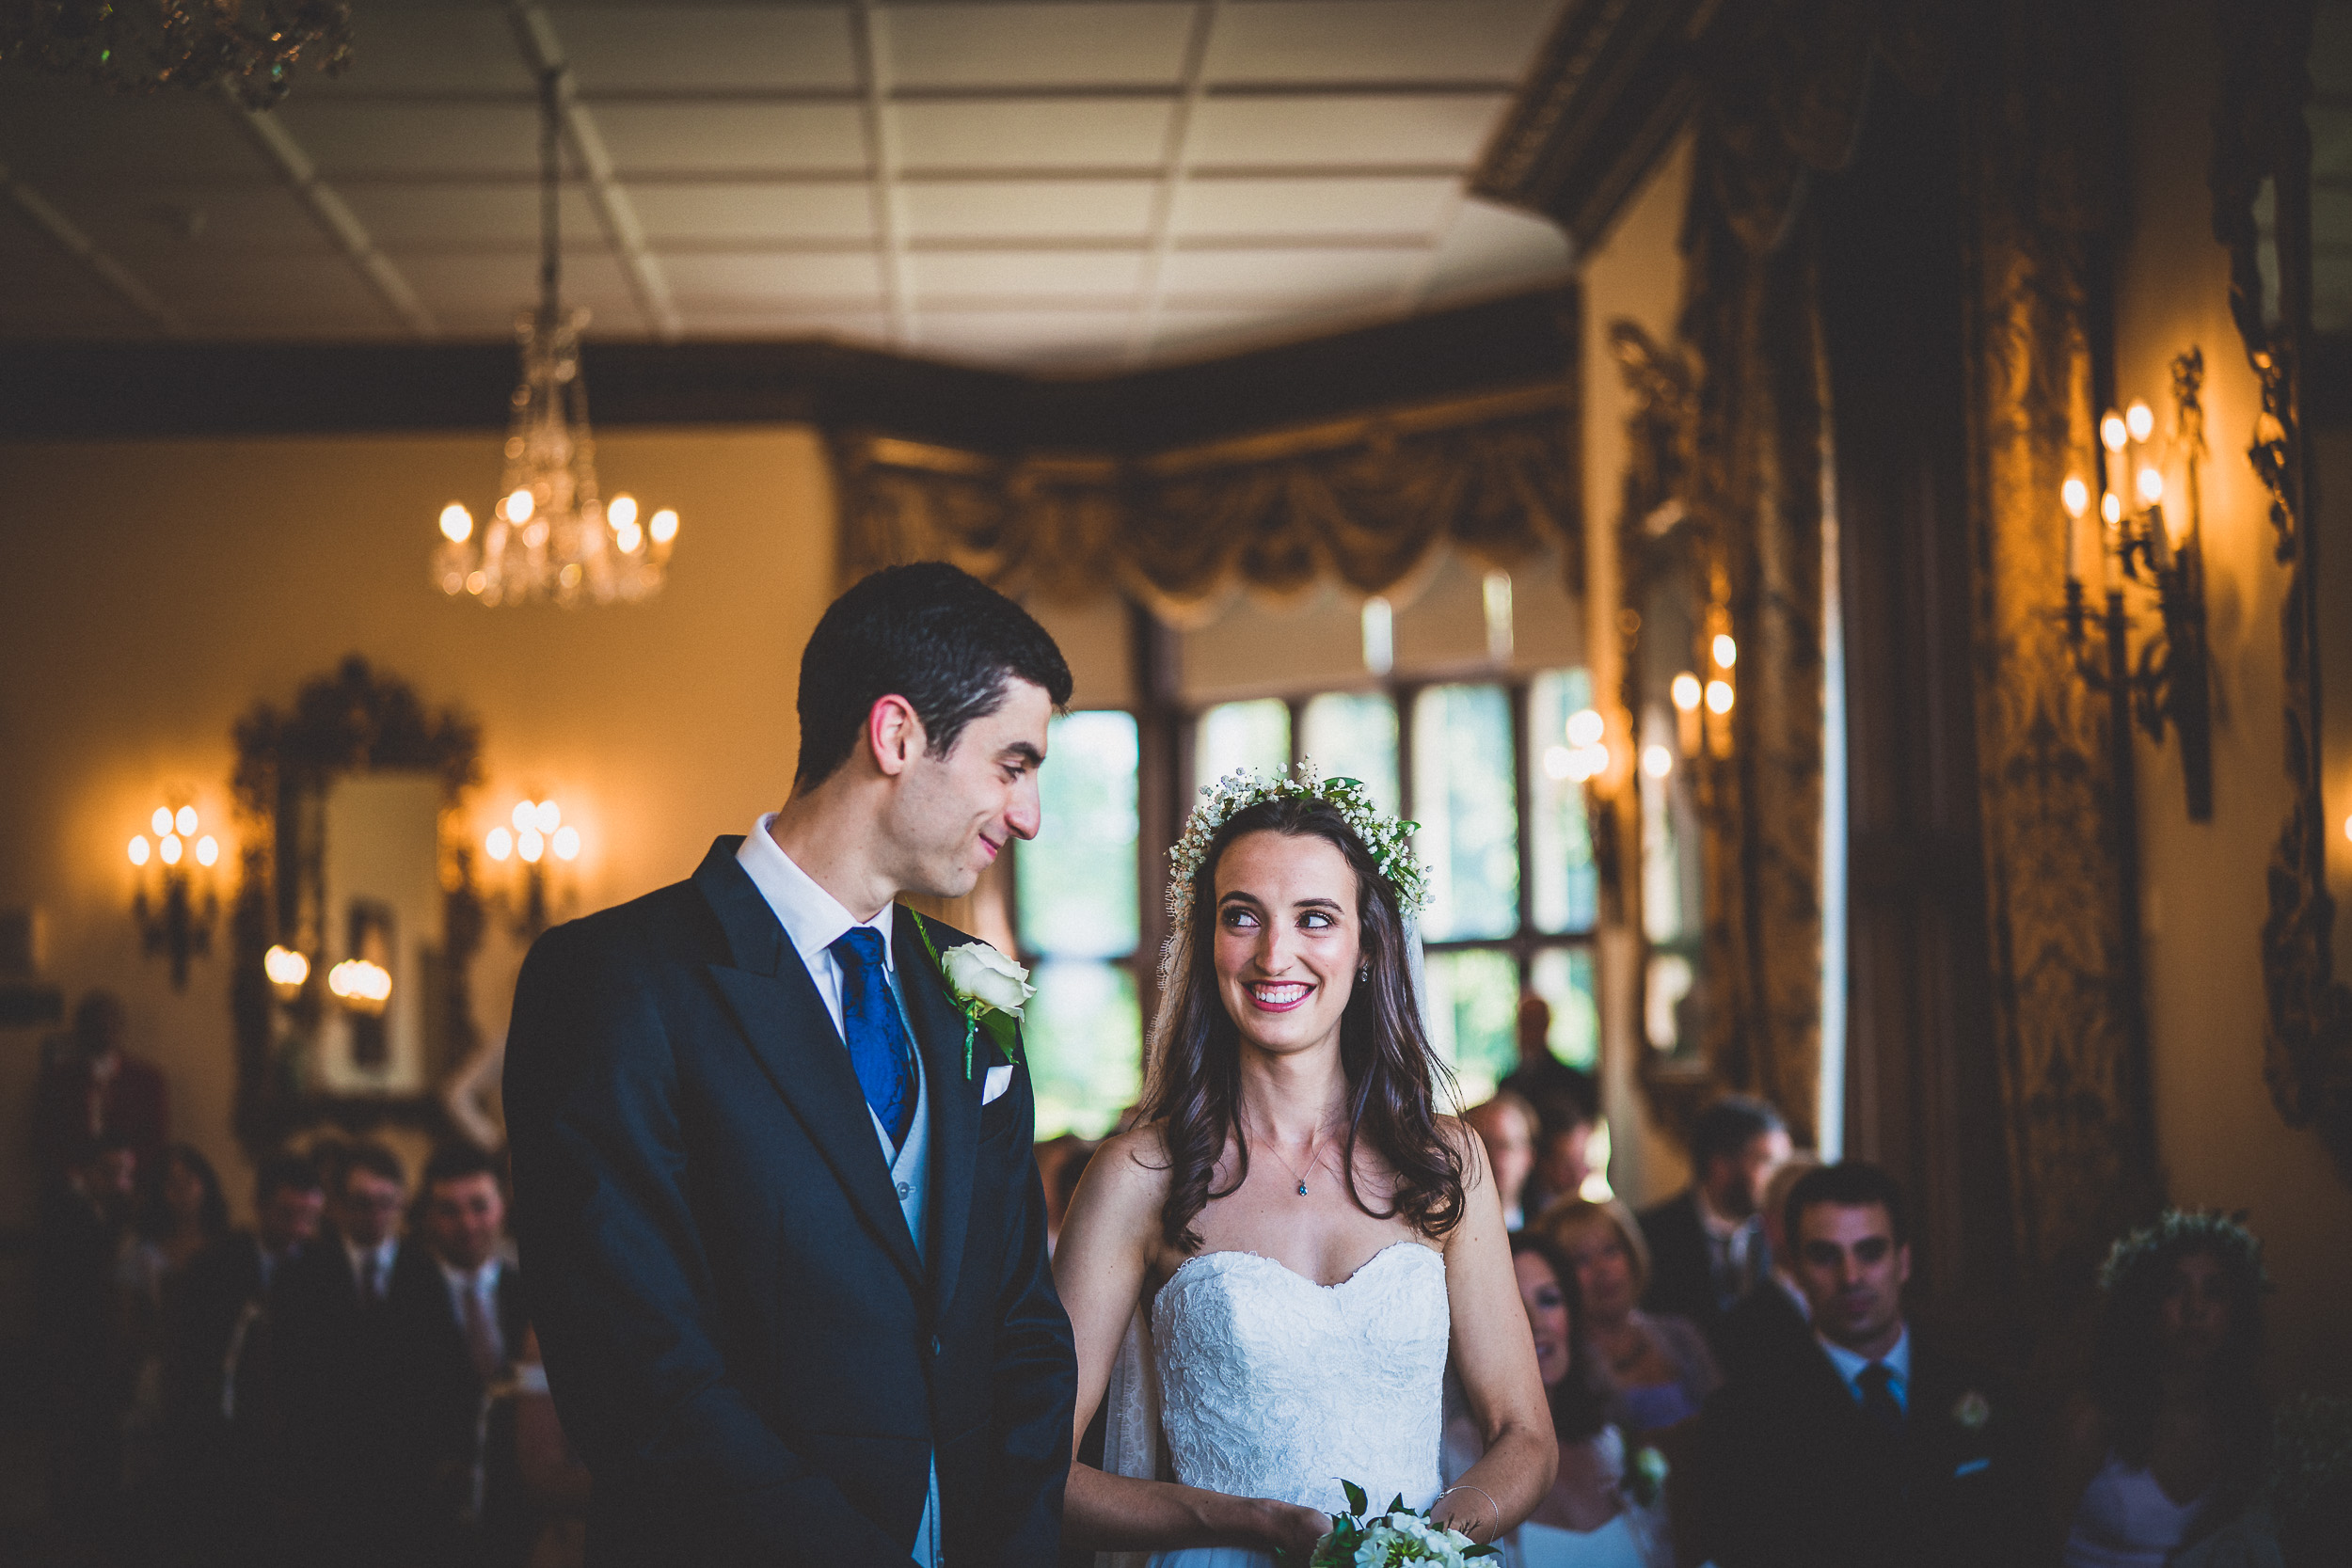 Wiston House Wedding Photography | Helouise & Alex Wiston house wedding photographer 013